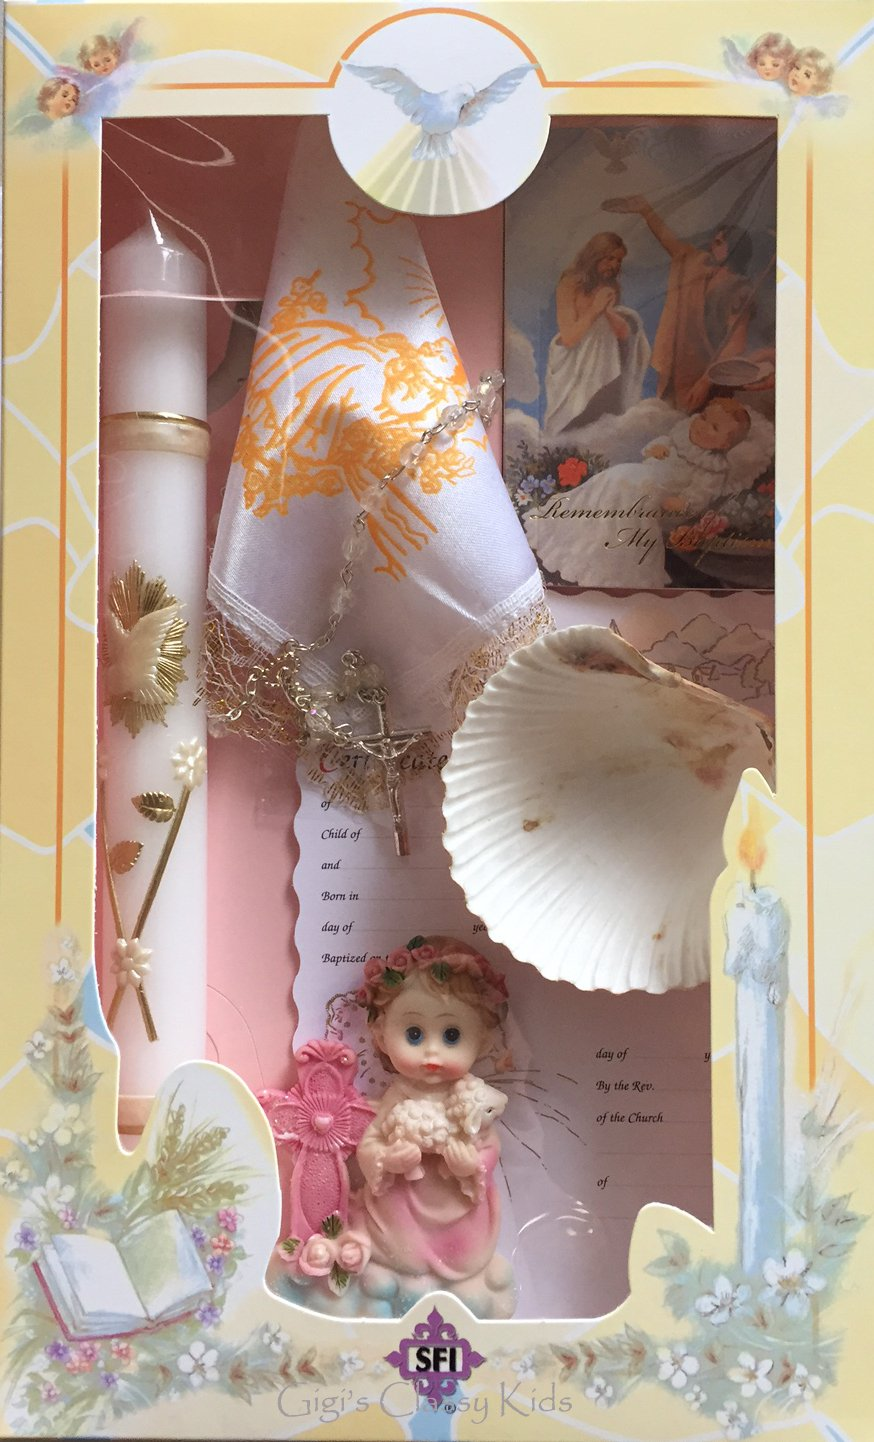 New Girl's Complete Baptism Christening Candle Set English Missal Gift Boxed